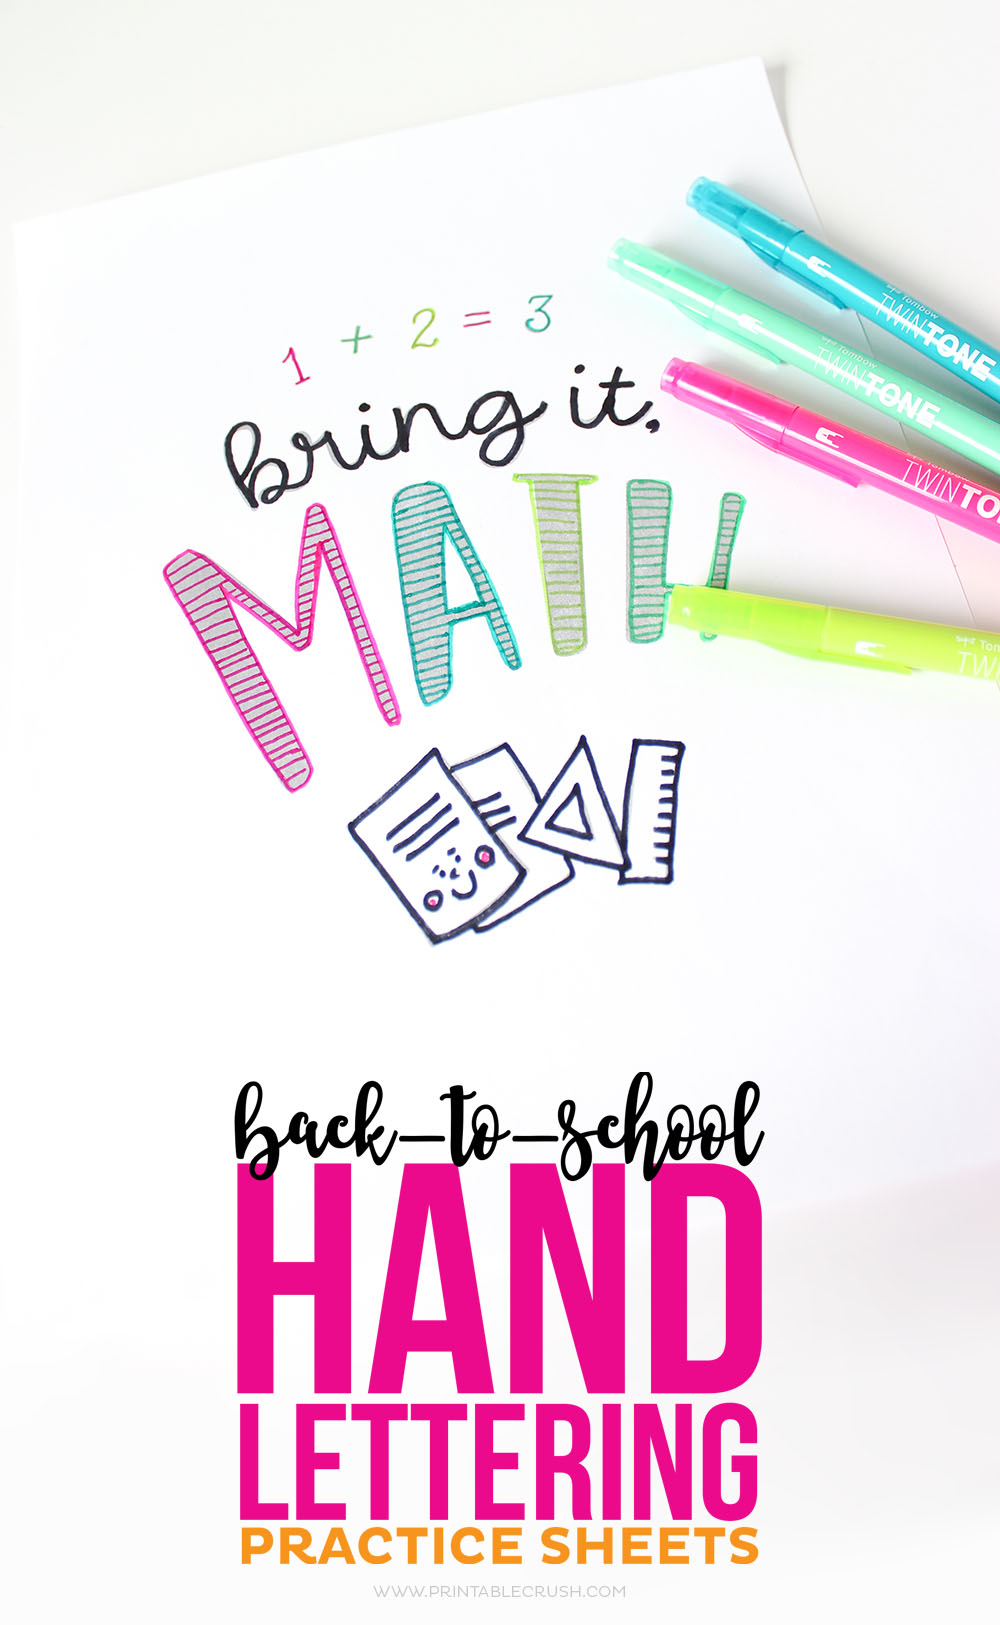 http://printablecrush.com/wp-content/uploads/2017/07/Back-to-School-Hand-Lettering-Practice-Sheets-28-copy.jpg